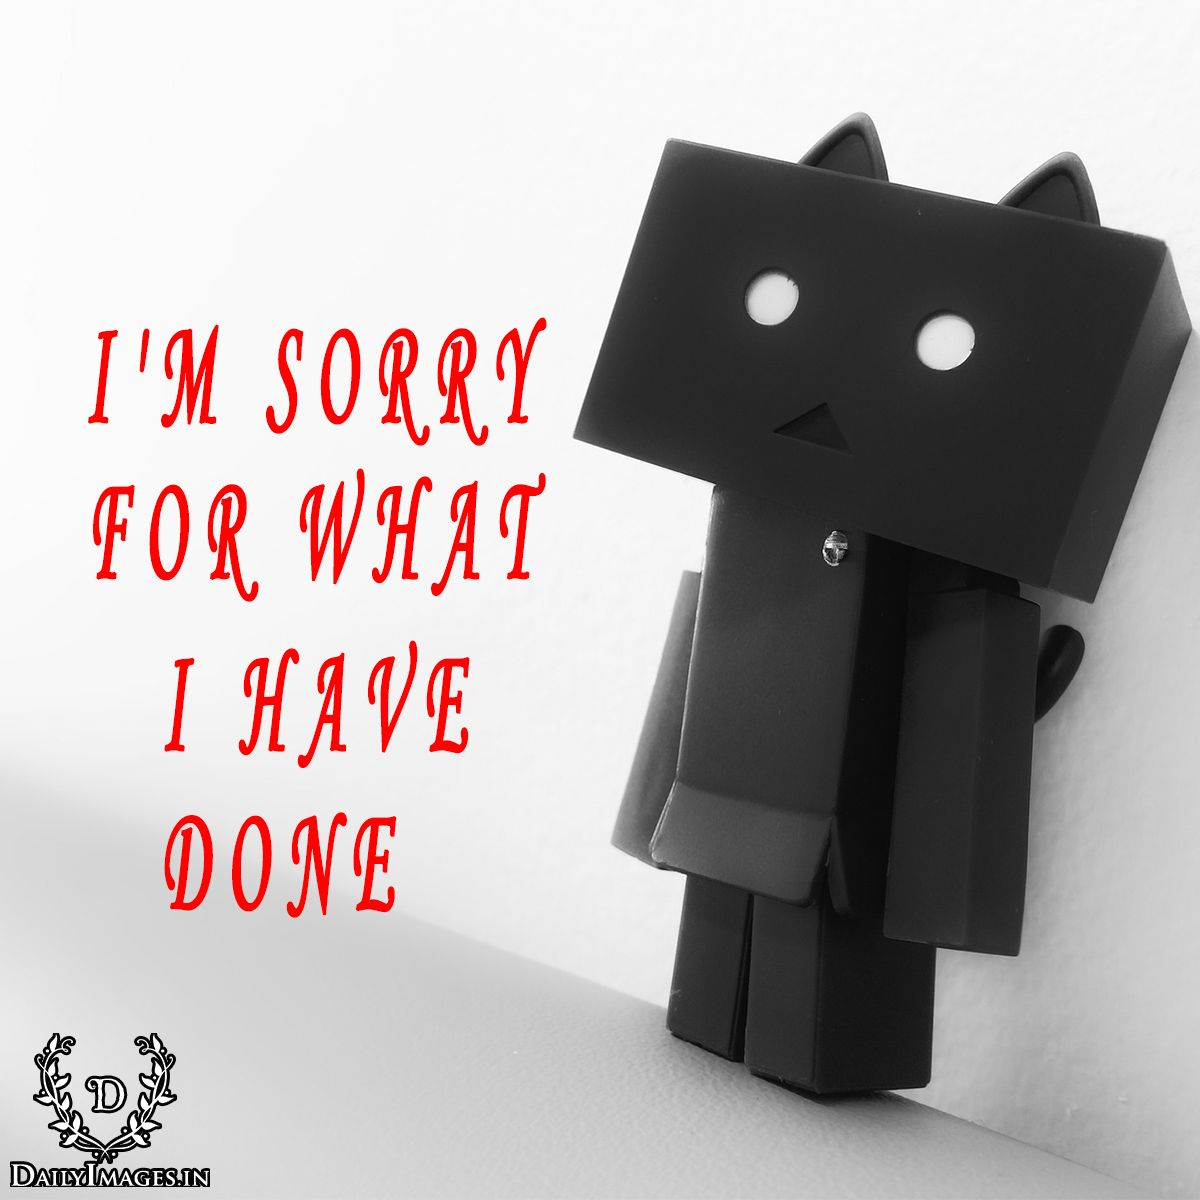 I M Sorry For What I Have Done Sorryquotes Sq Quotes Sorry Images Sorry Quotes I Am Sorry